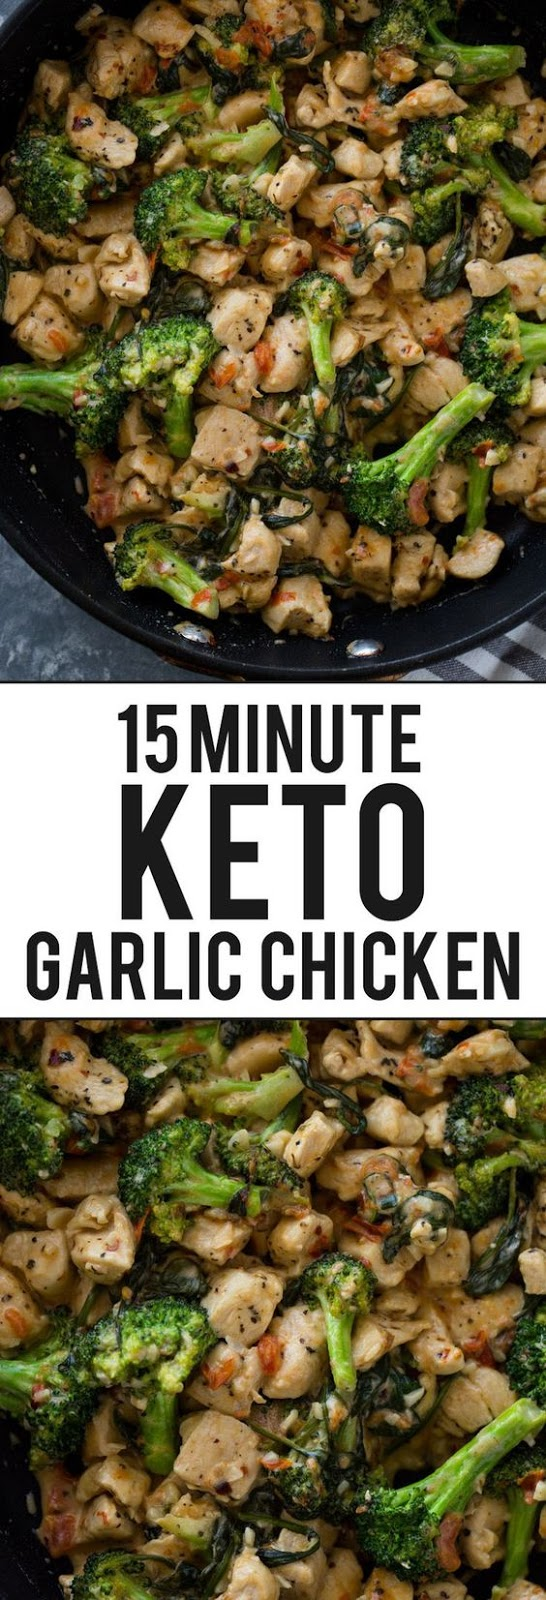 15 Minute Keto Garlic Chicken with Broccoli and Spinach